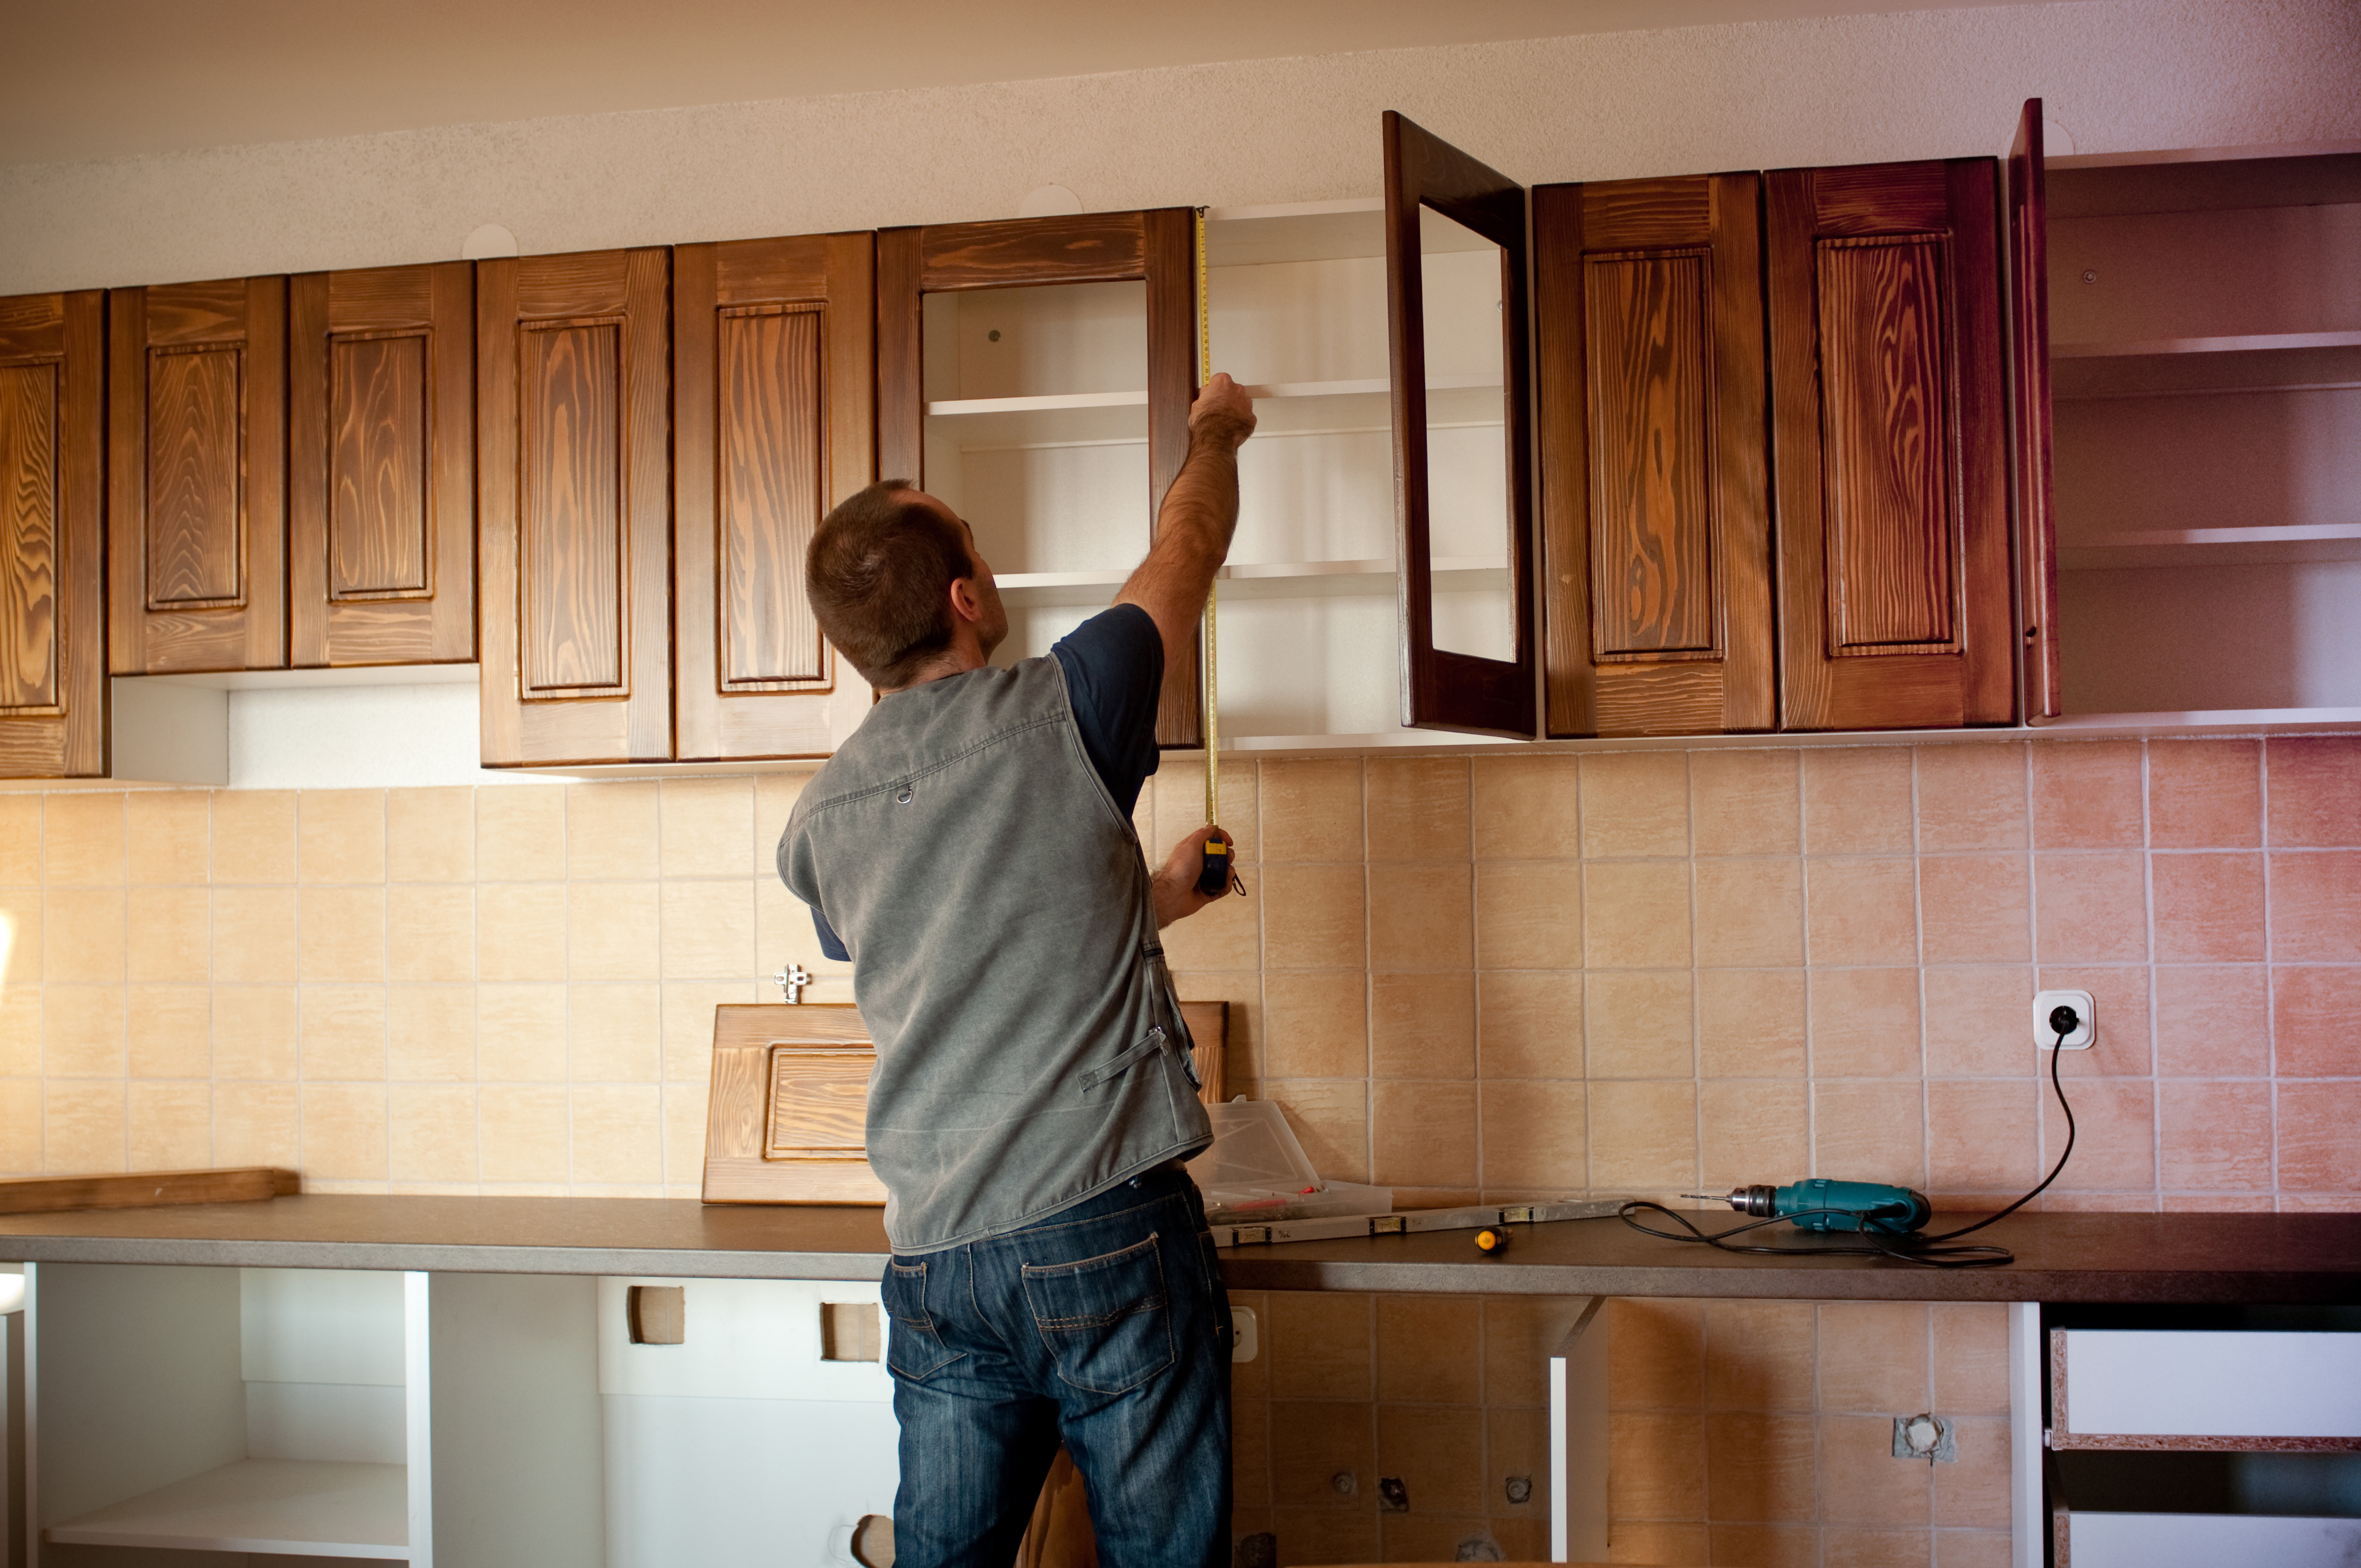 How To Finance Kitchen Remodel The Best Way To Finance Your Home Improvement Projects Financial